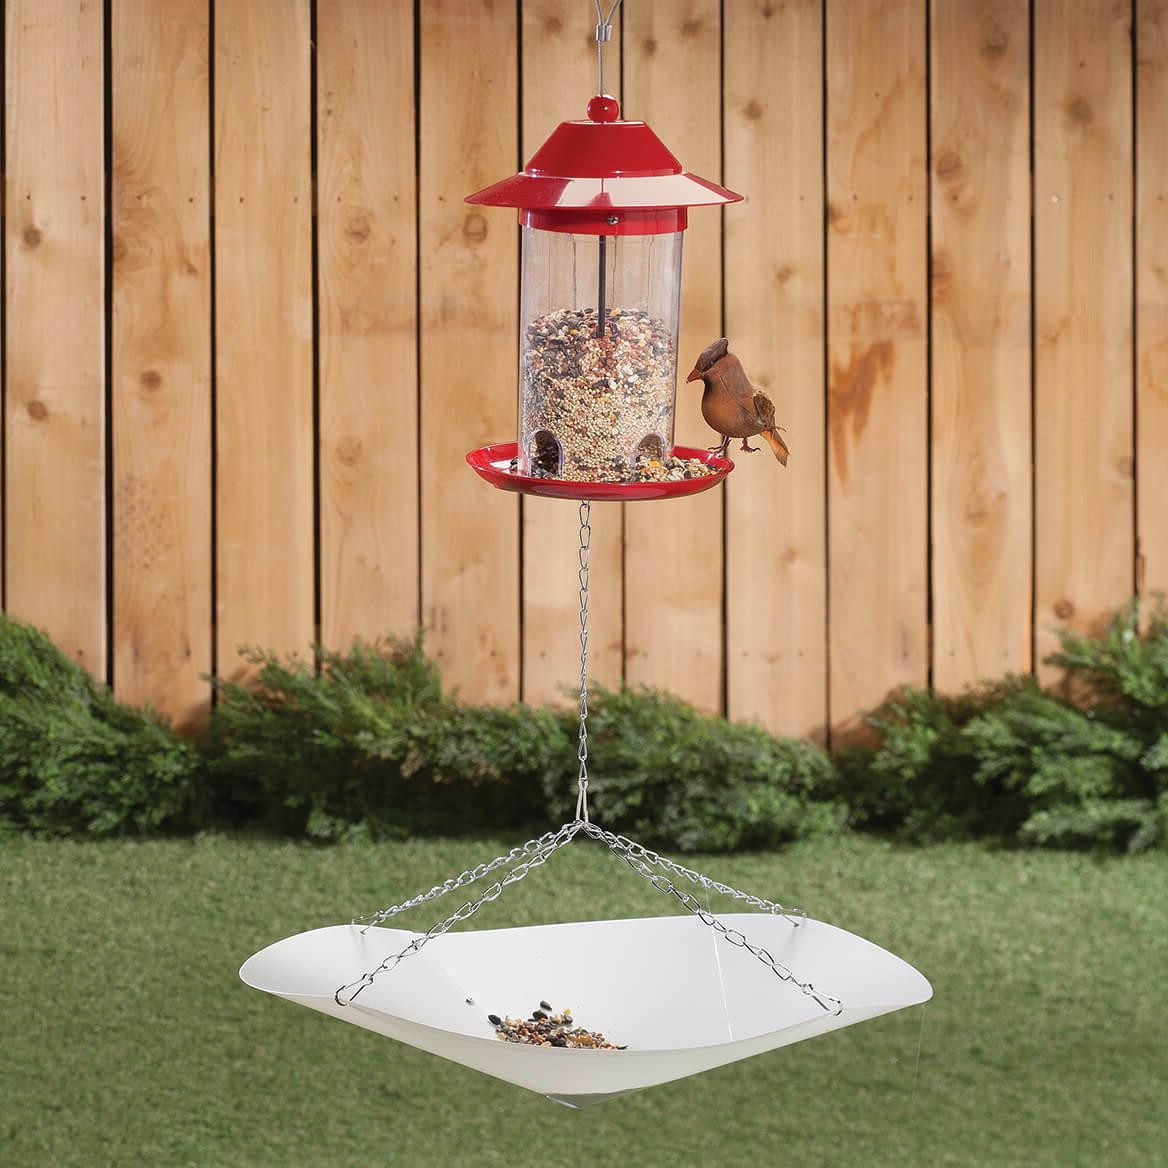 Bird Seed Catcher Hanging Plastic tray with chains Under bir